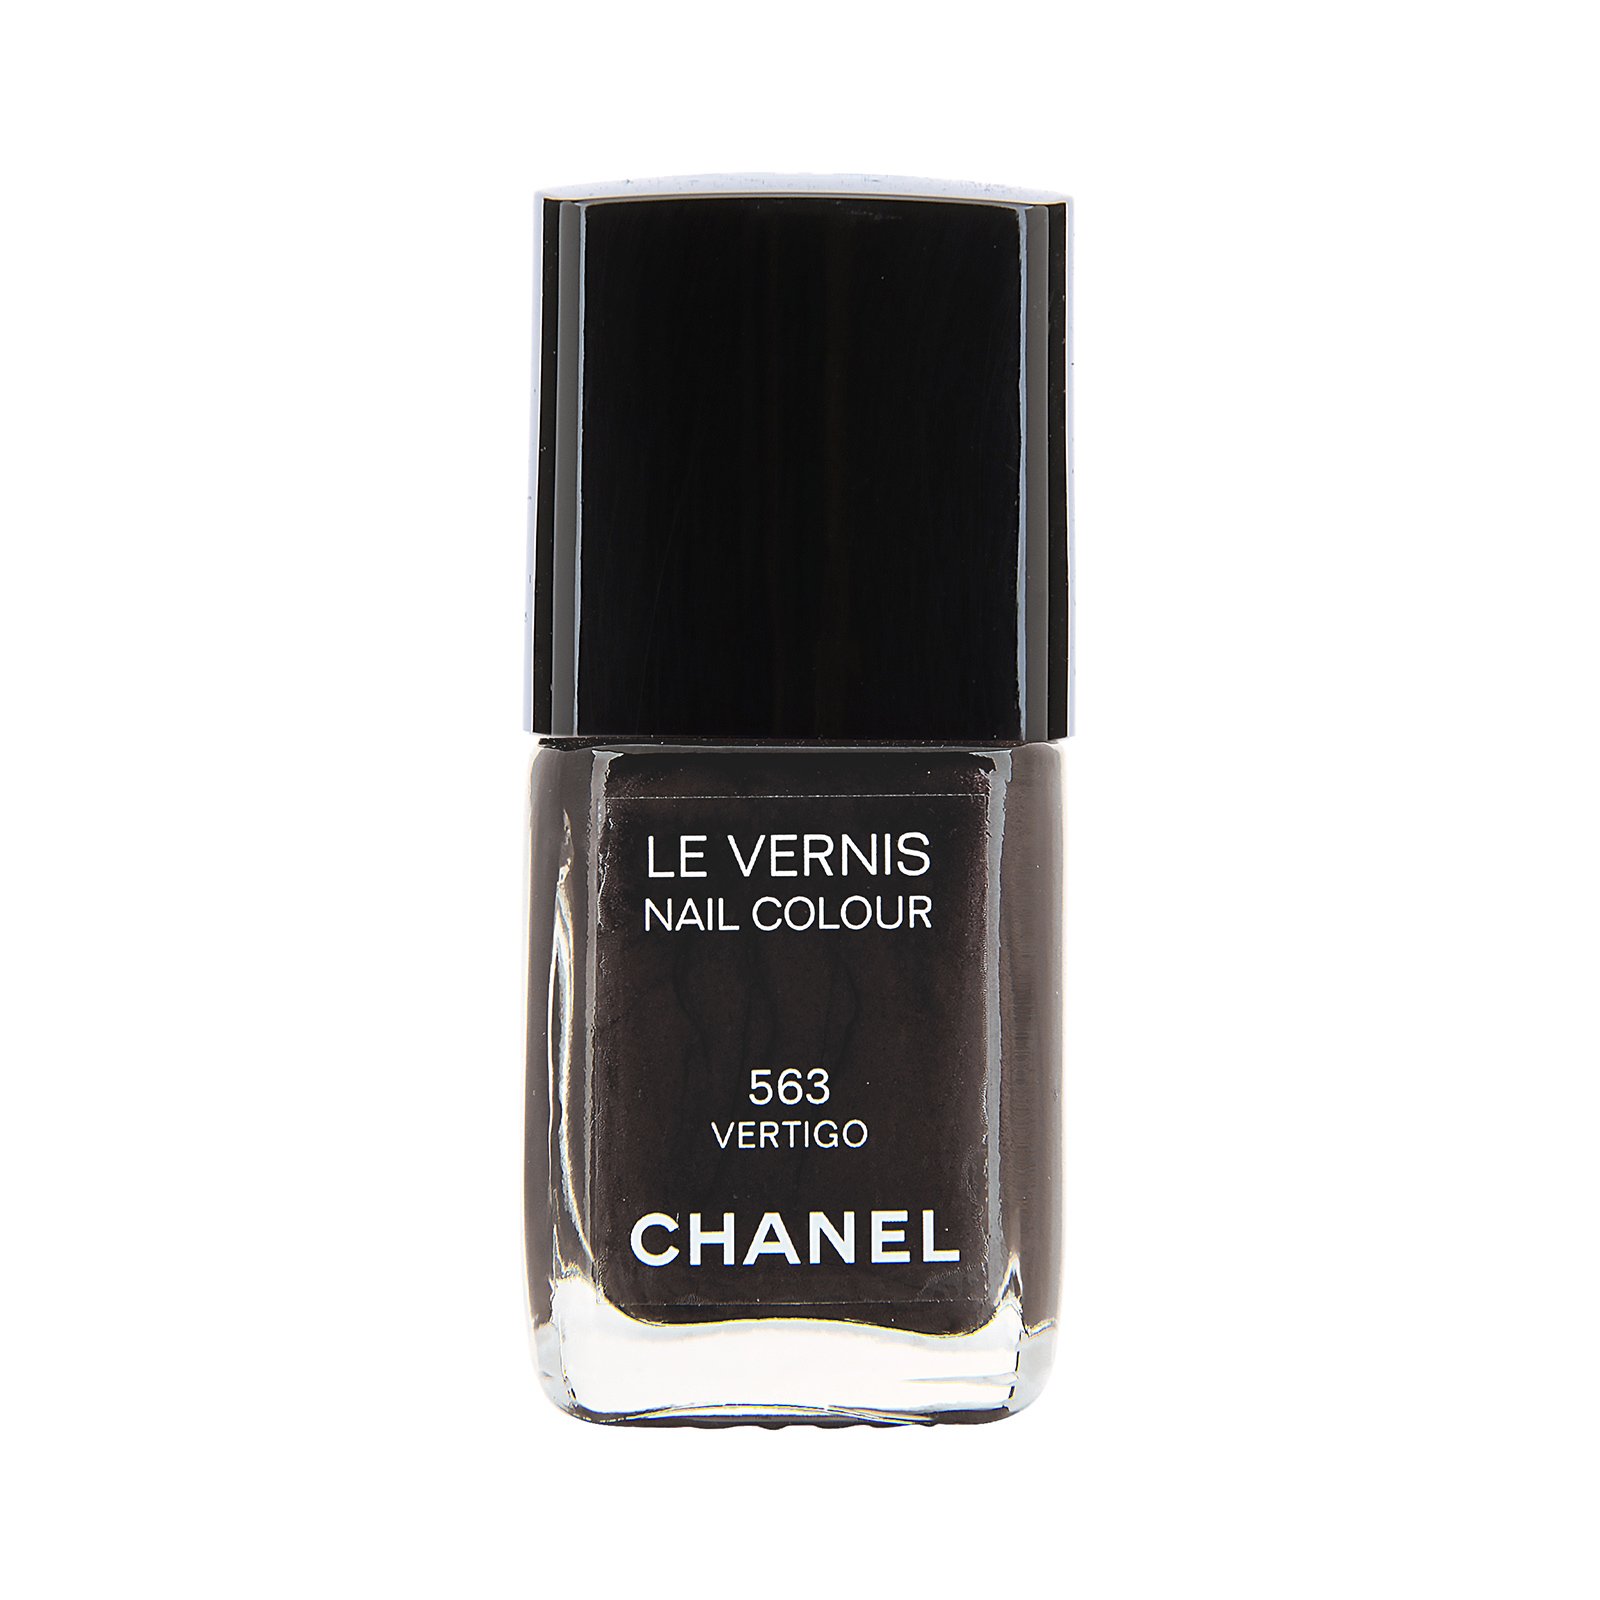 Chanel Le Vernis Nail Colour 563 Vertigo, 0.4oz, 13ml